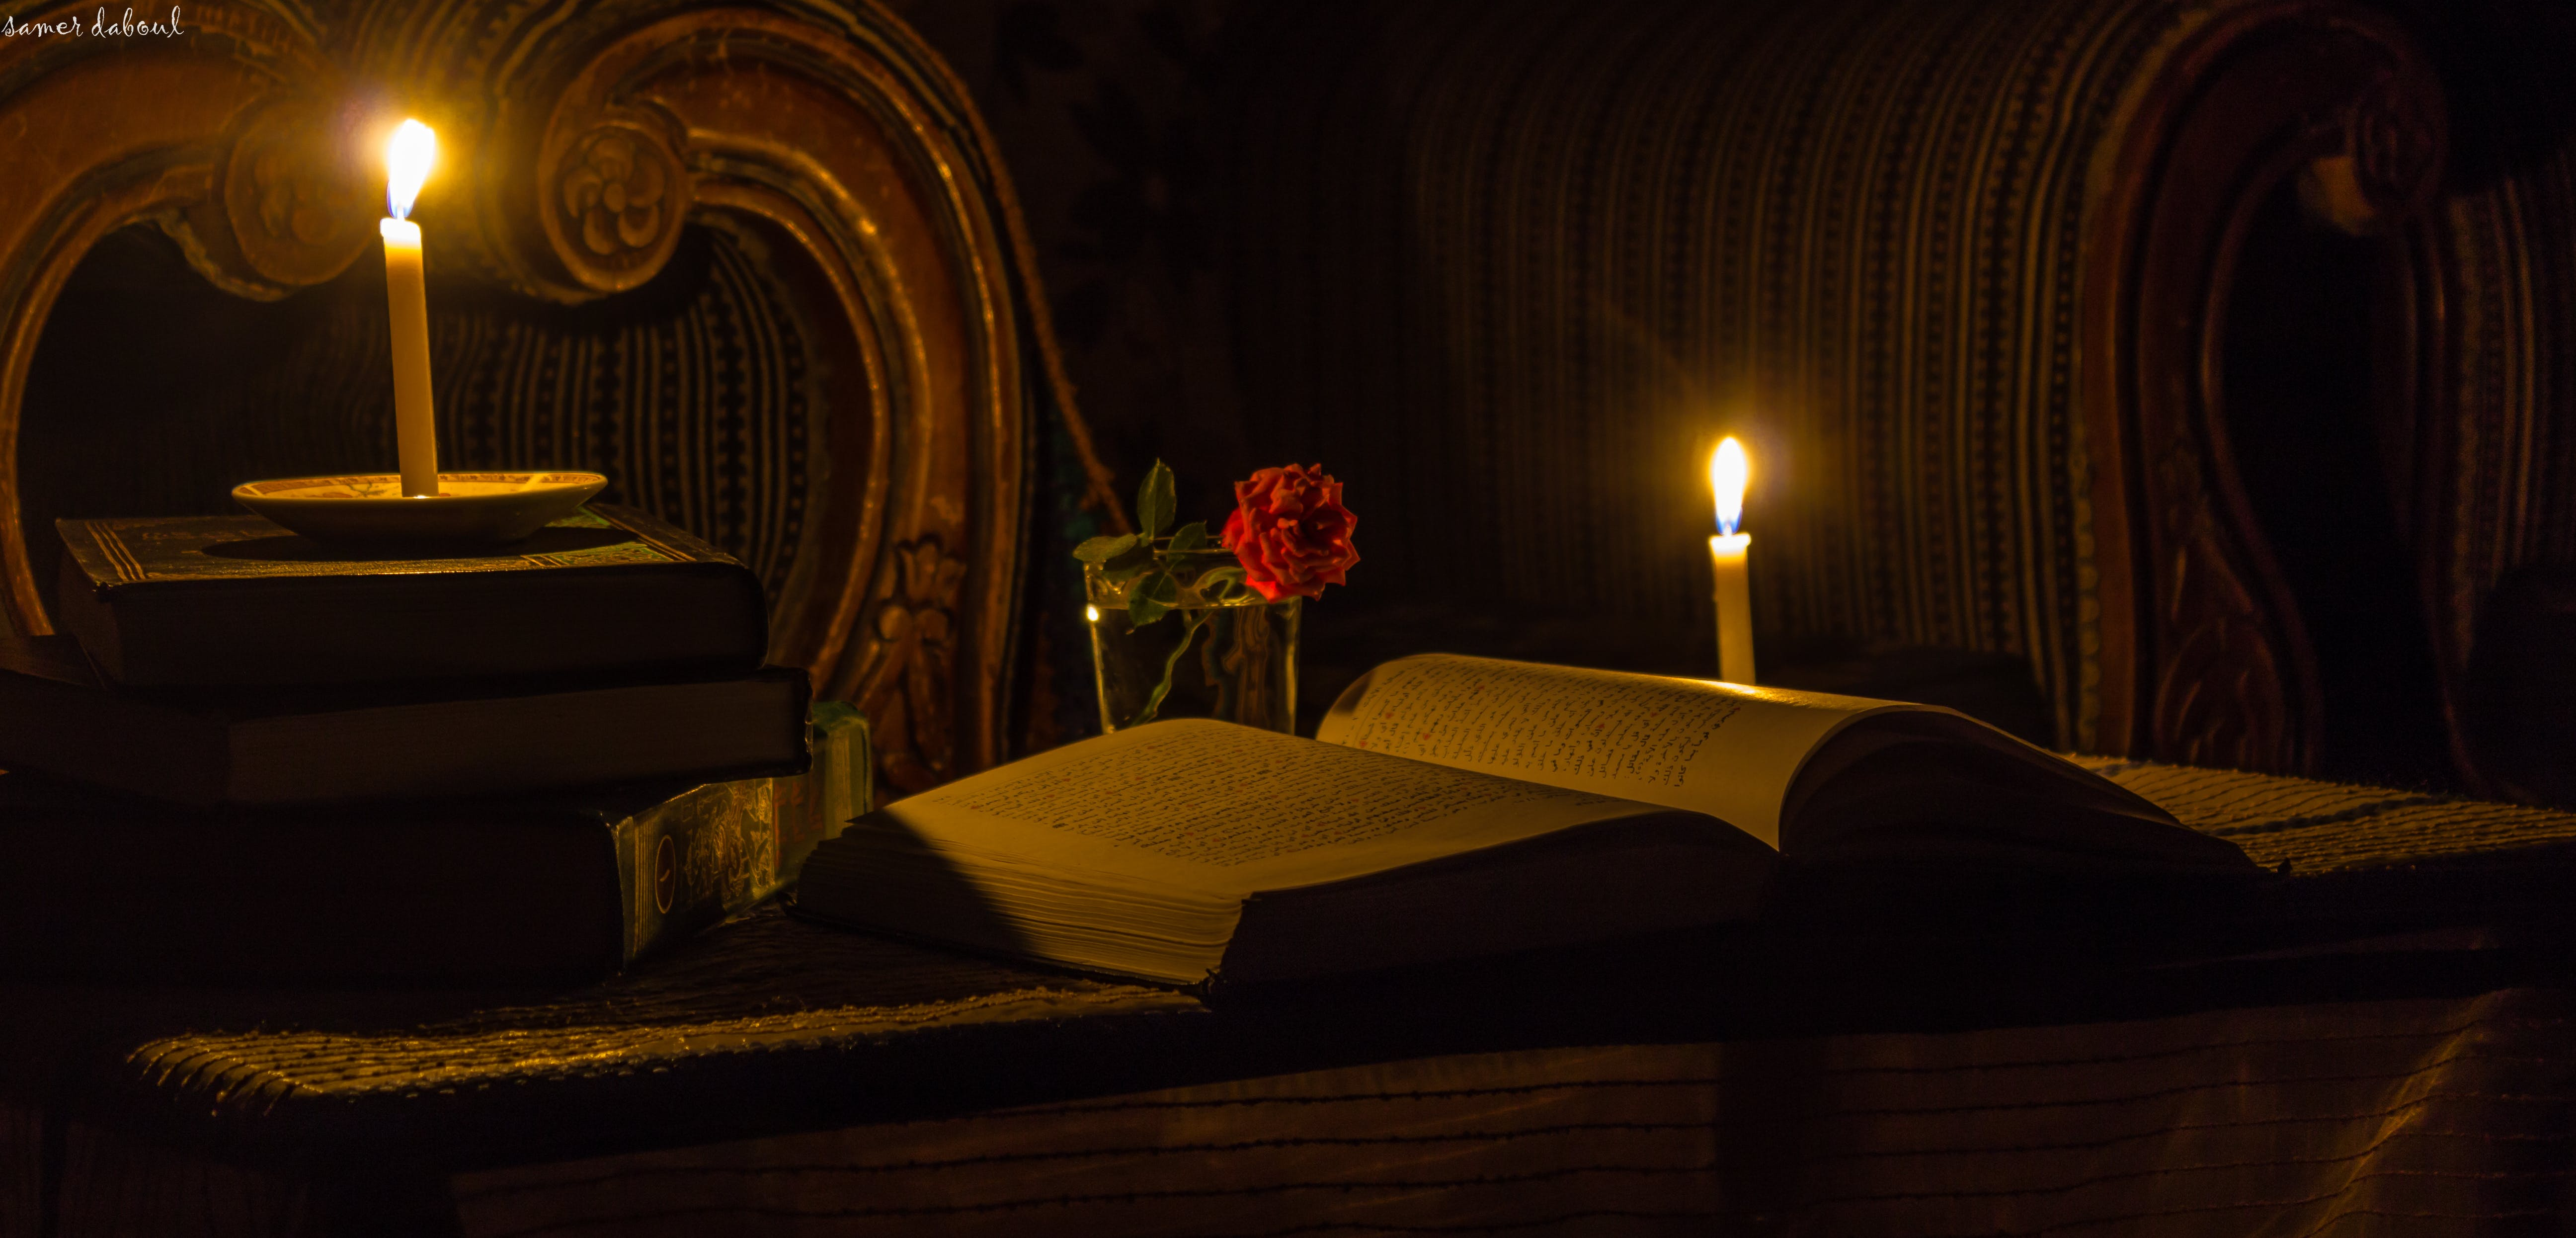 Free stock photo of a candle, book, calm, canon